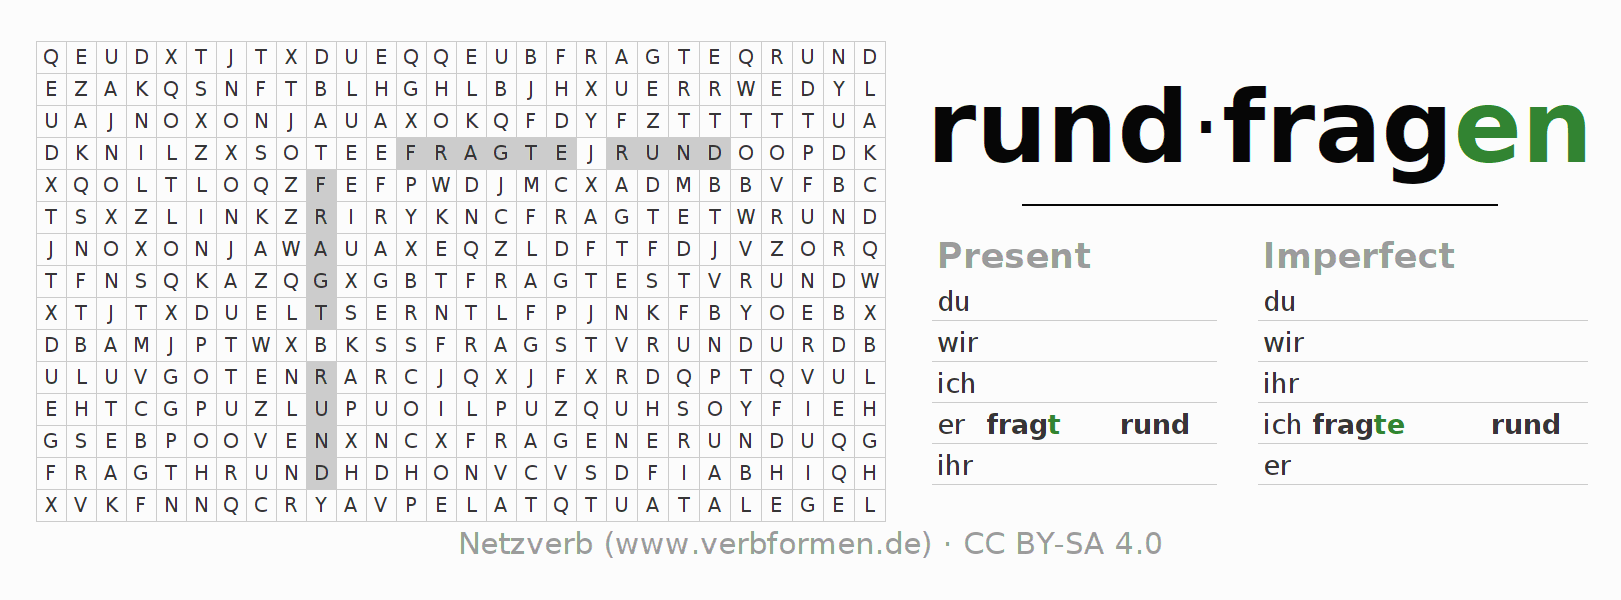 Word search puzzle for the conjugation of the verb rundfragen